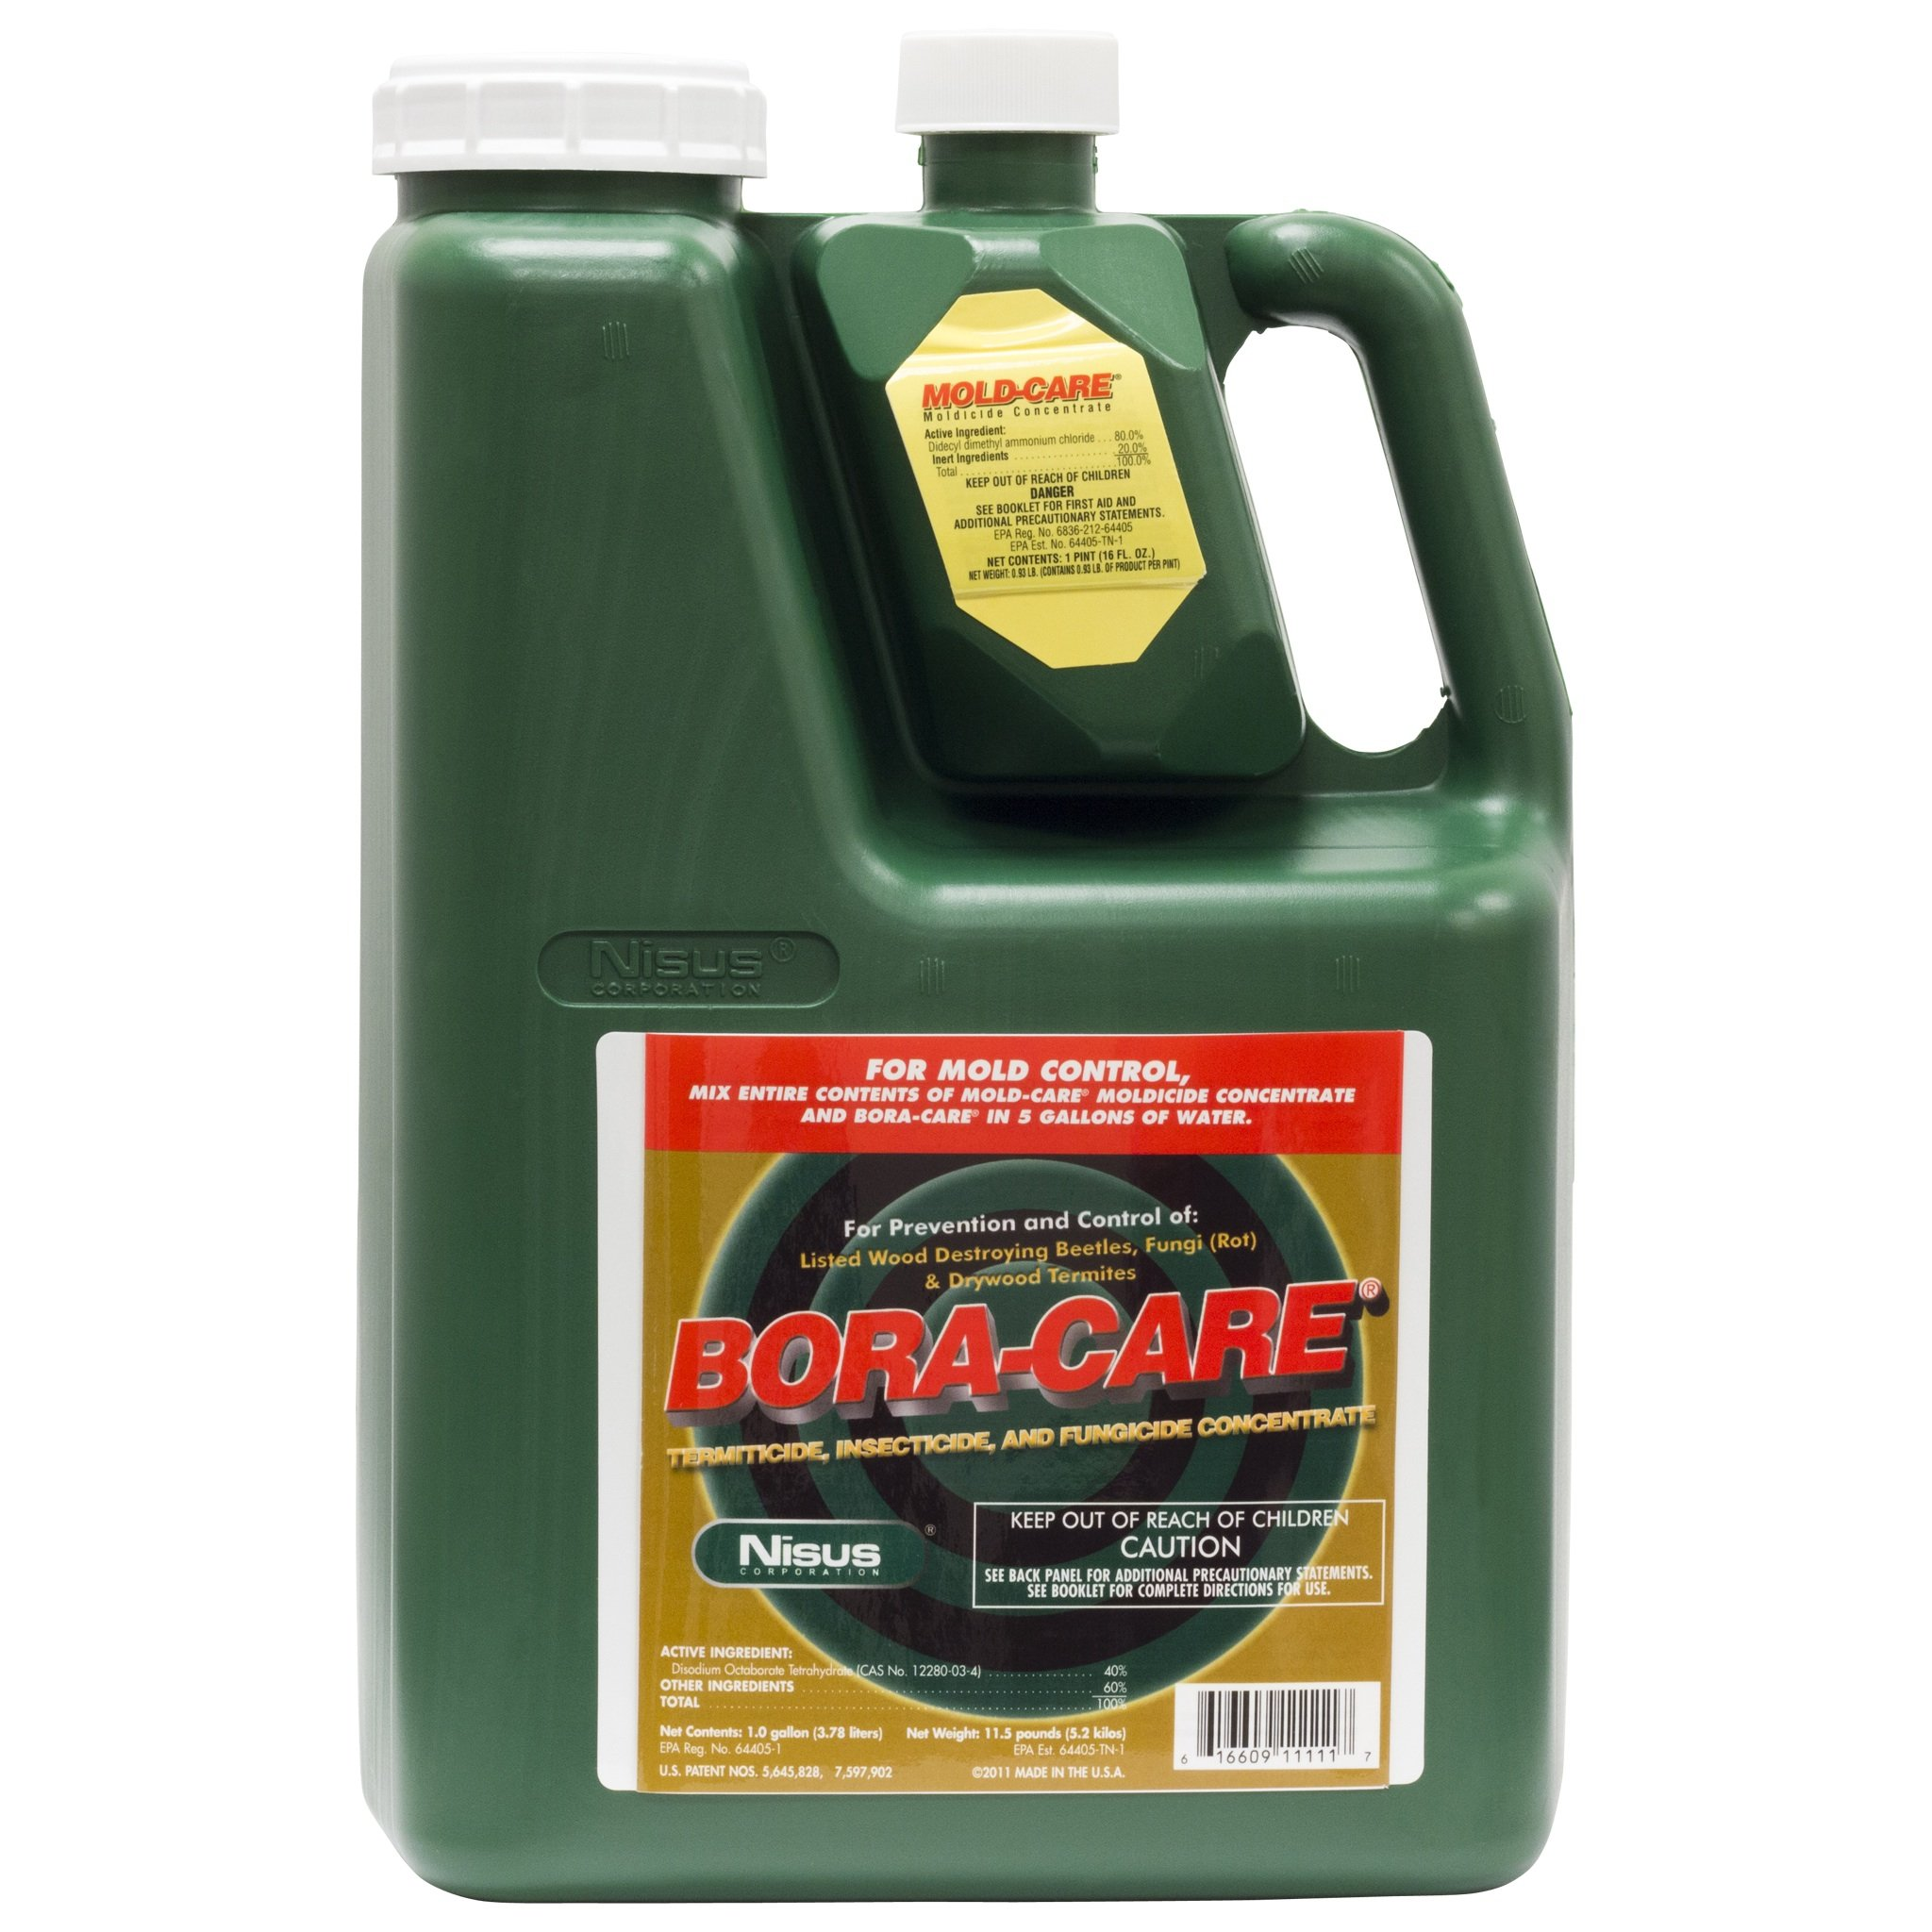 Bora-Care® with Mold-Care 2 Gallons 608794 by Boracare